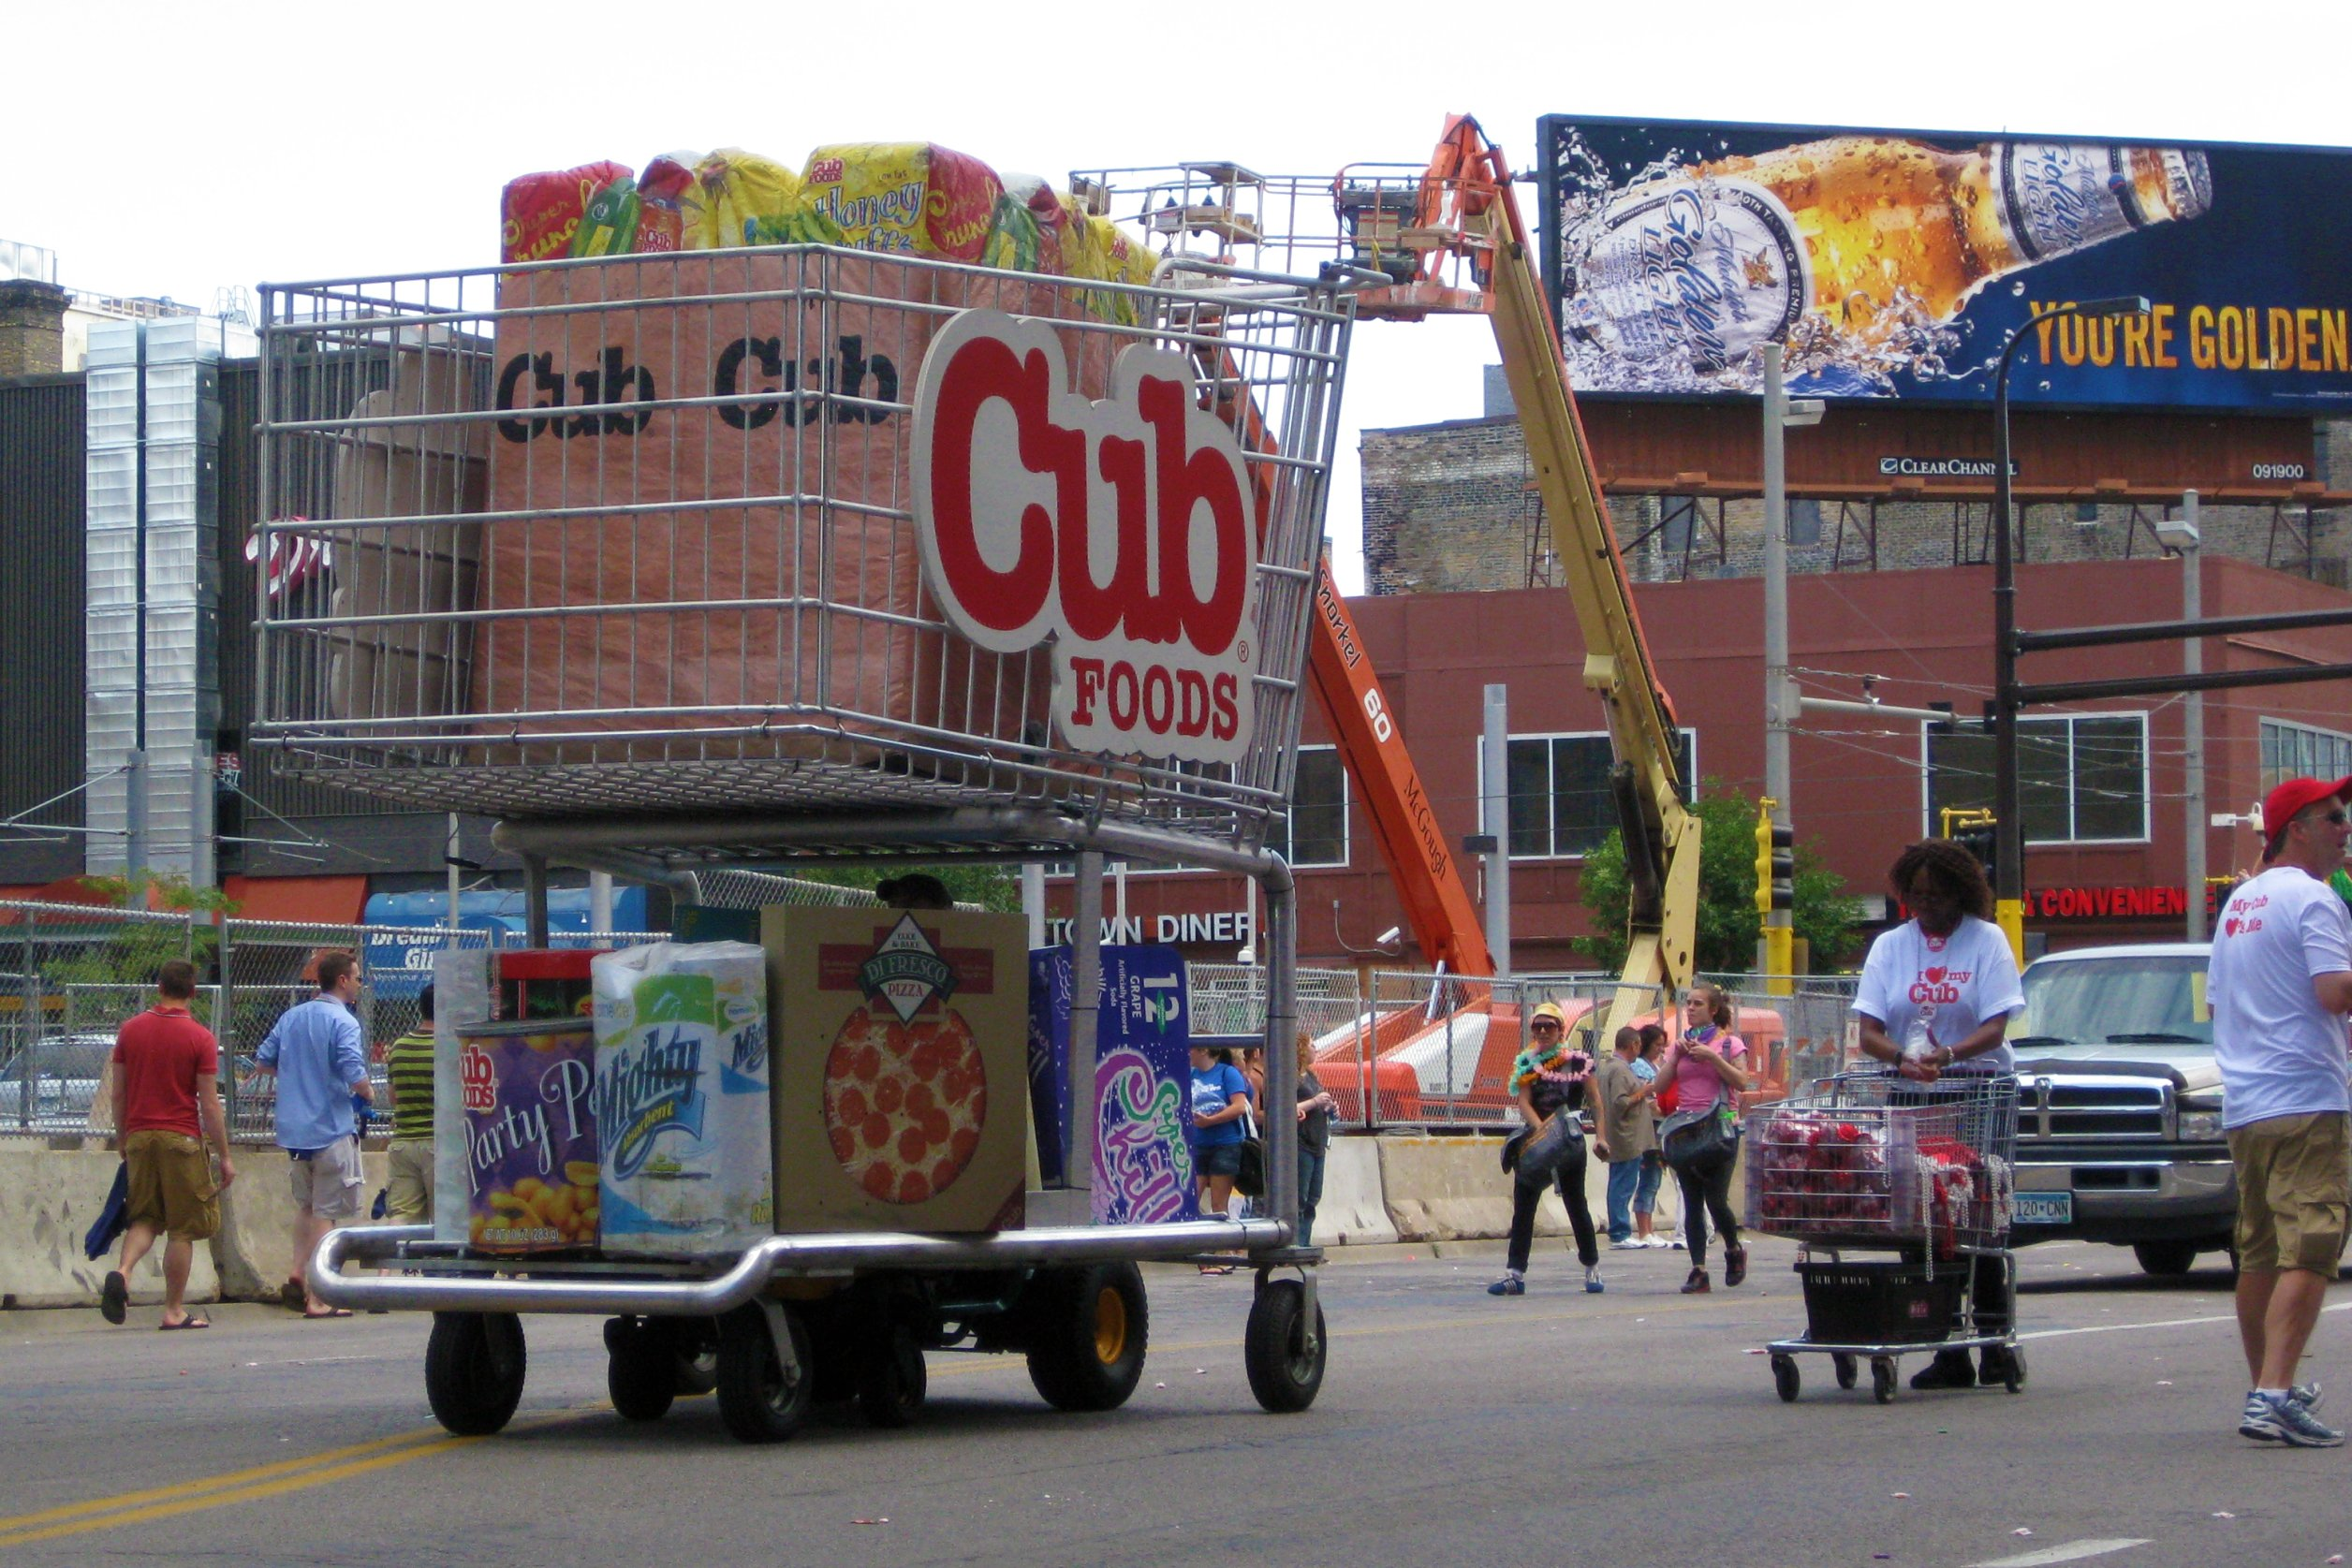 cub foods 5 reviews of cub foods we now have 8 grocery stores in and neaby woodbury plus a super target, sam's club & walmart with a whole foods and costco arriving next year our absolute favorite for weekly standard grocery shopping remains the cub at.